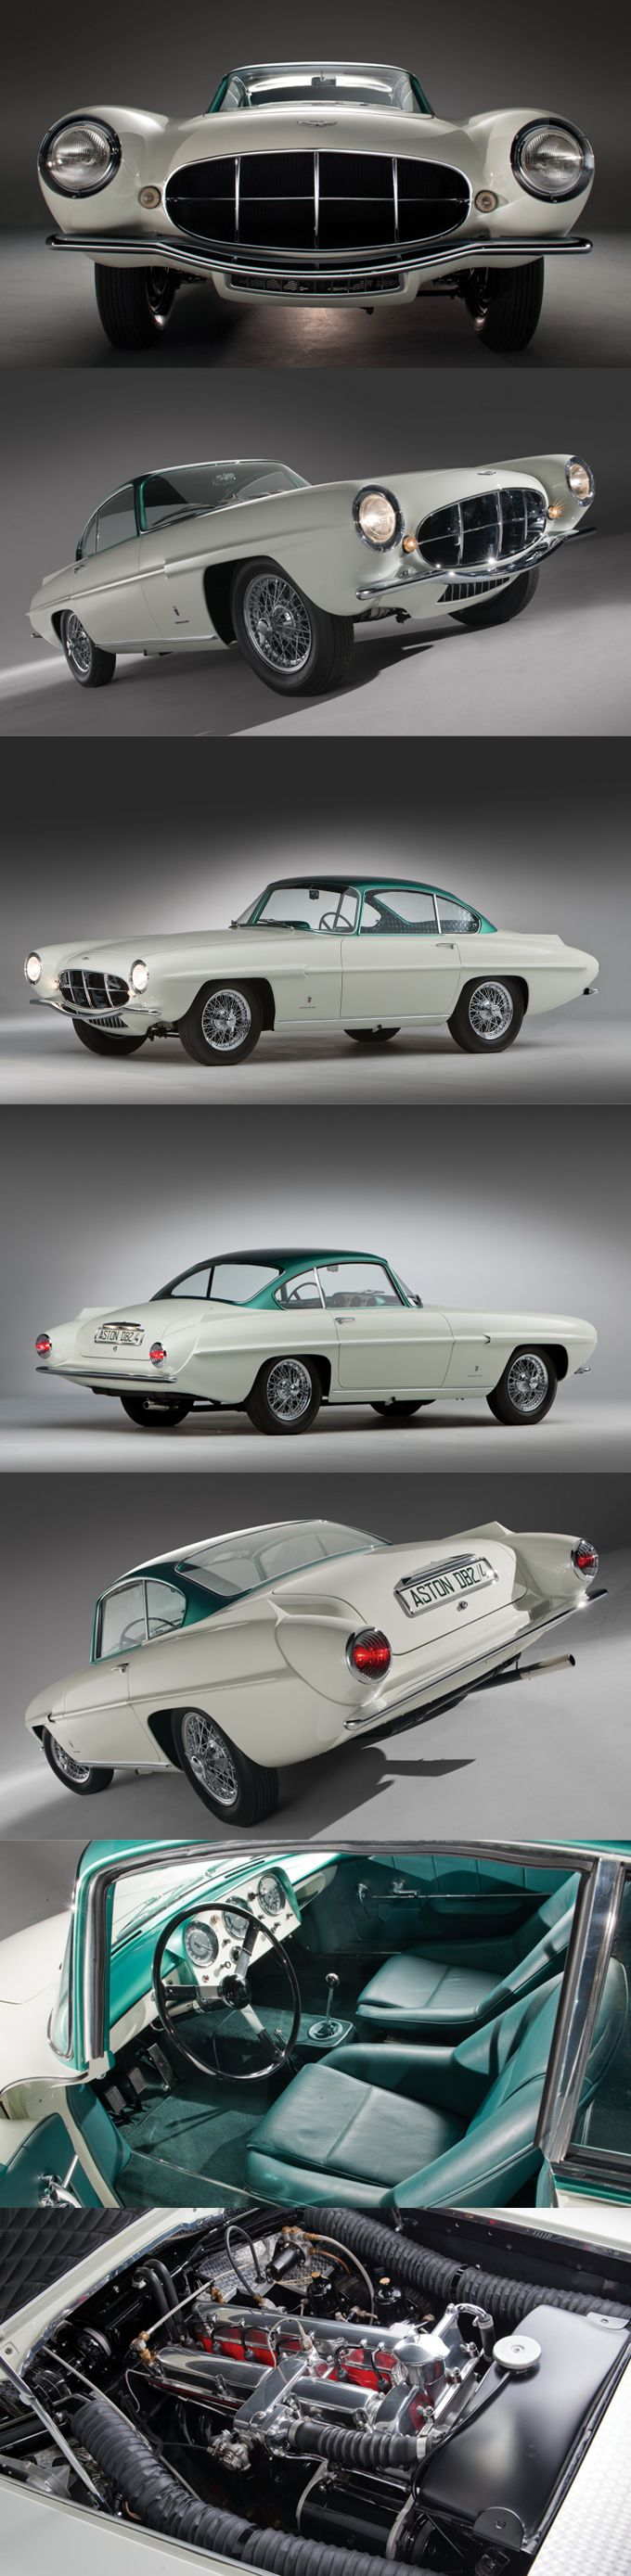 1956 Aston Martin DB2/4 Ghia 'Supersonic' / UK Italy / green white / 17-247